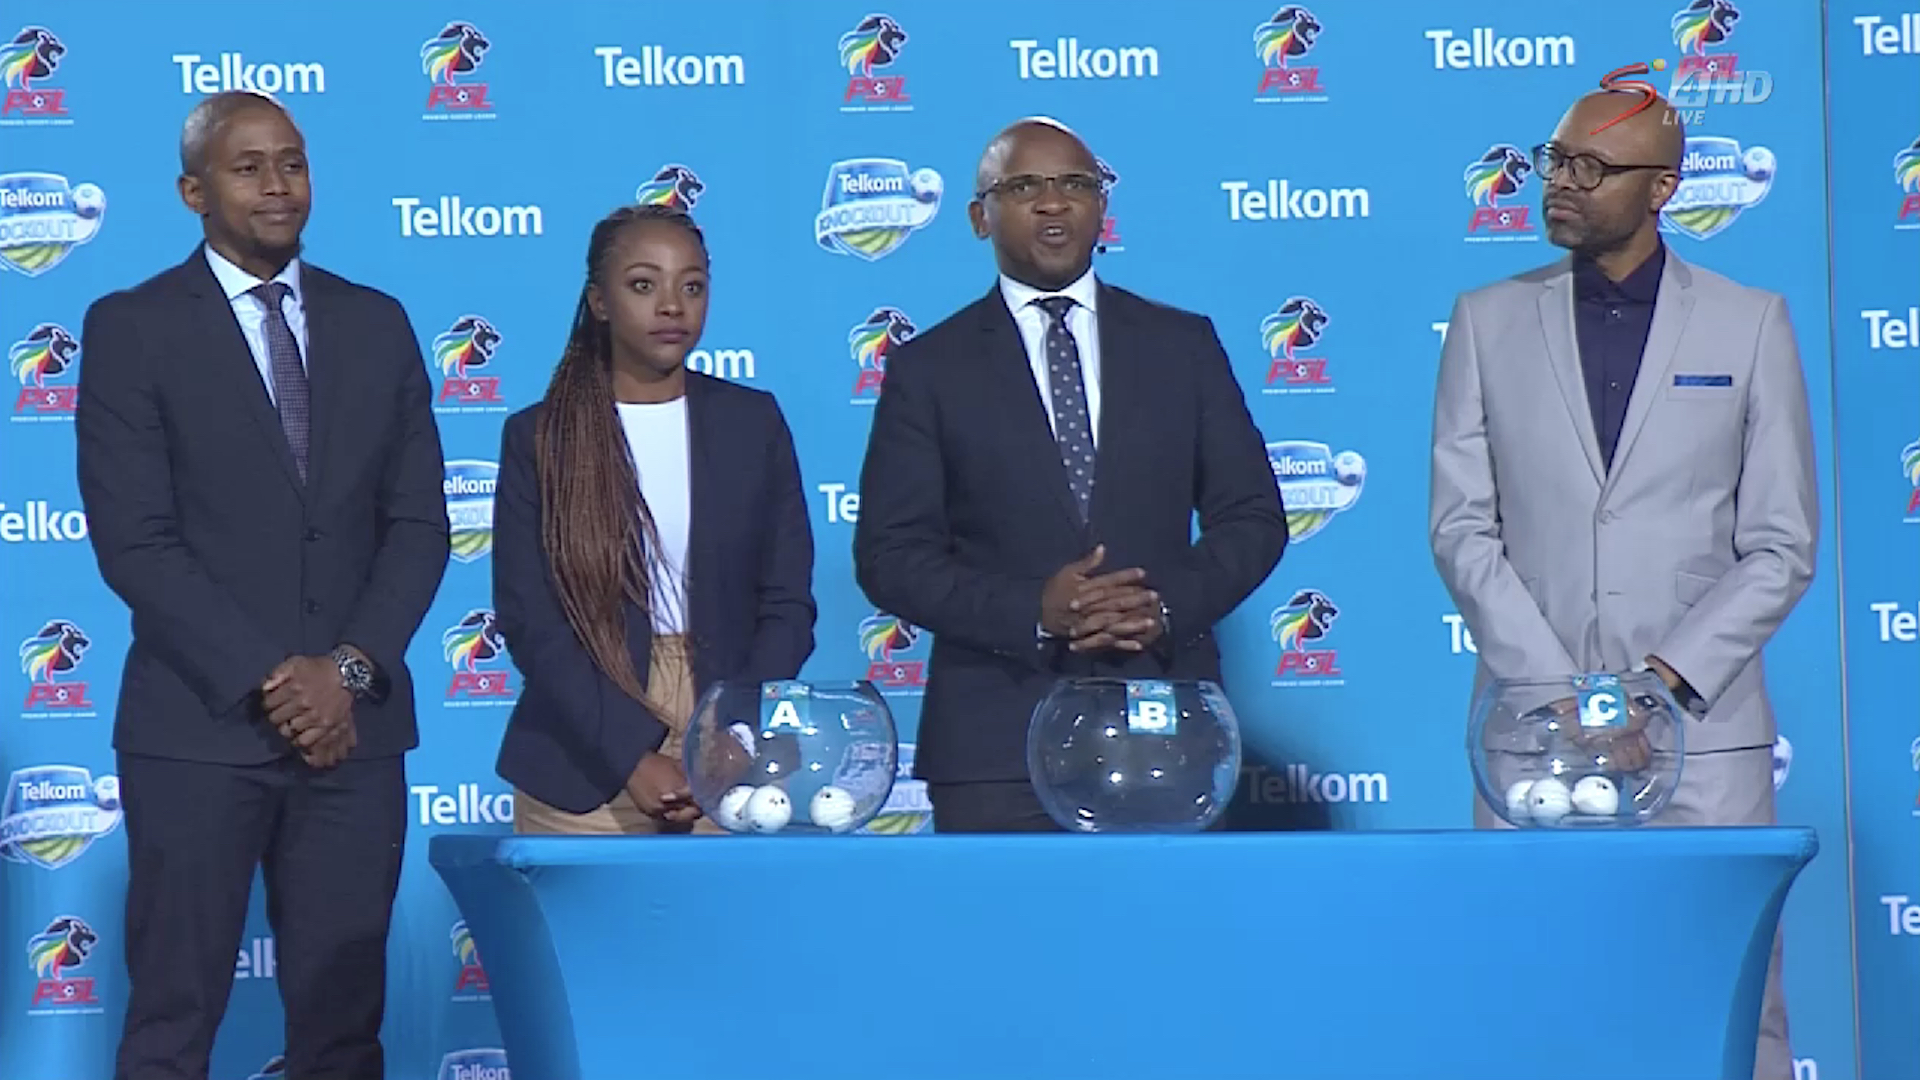 Telkom Knockout | Quarterfinals draw